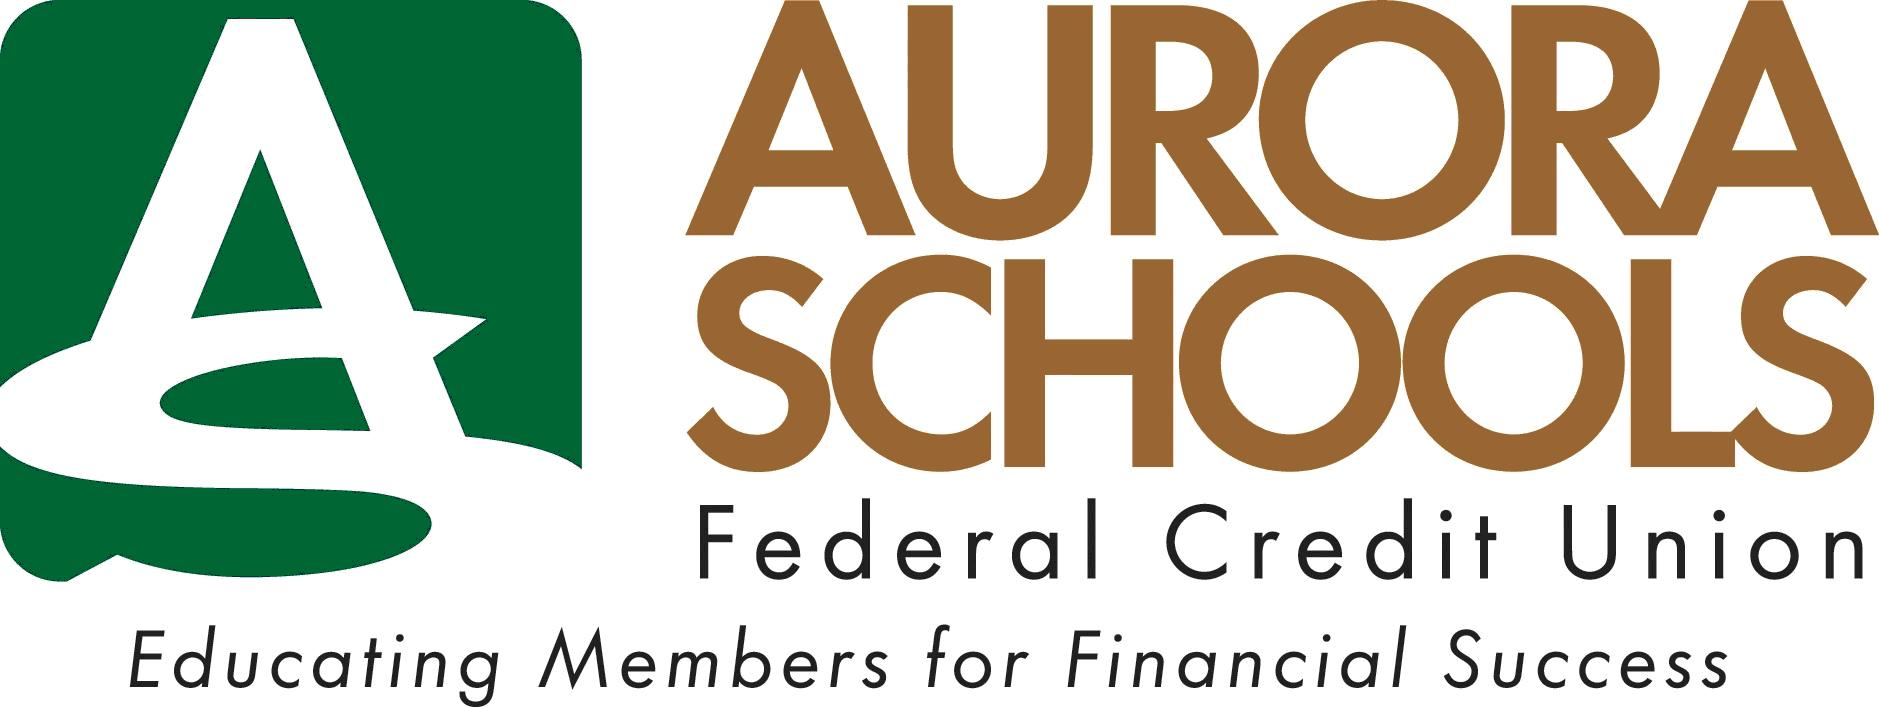 Aurora Schools Federal Credit Union Logo